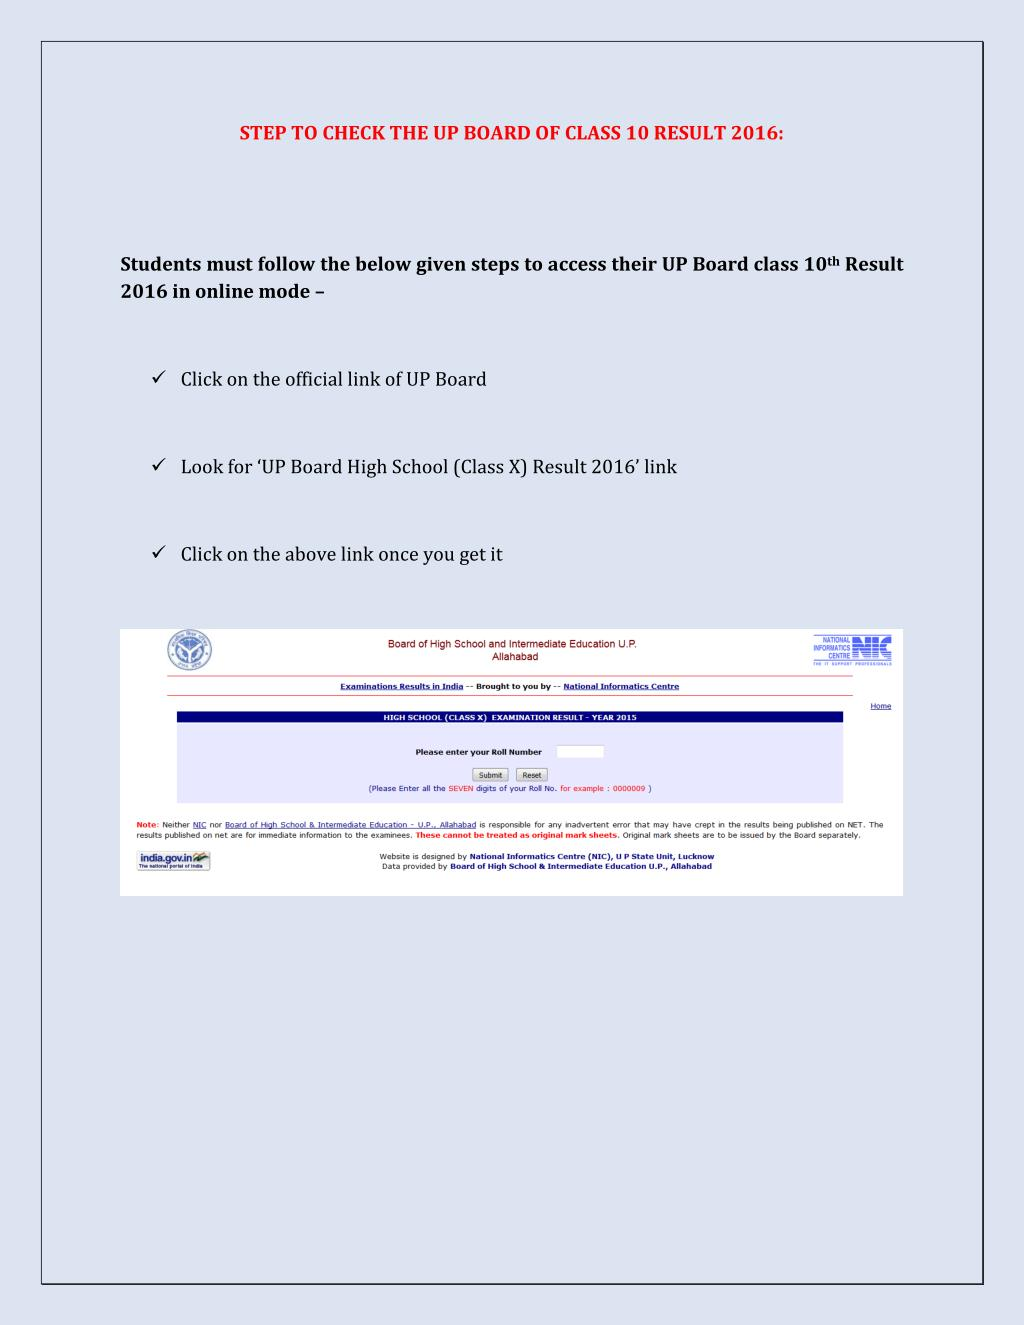 PPT - Step to check the up board of class 10 result 2016 PowerPoint